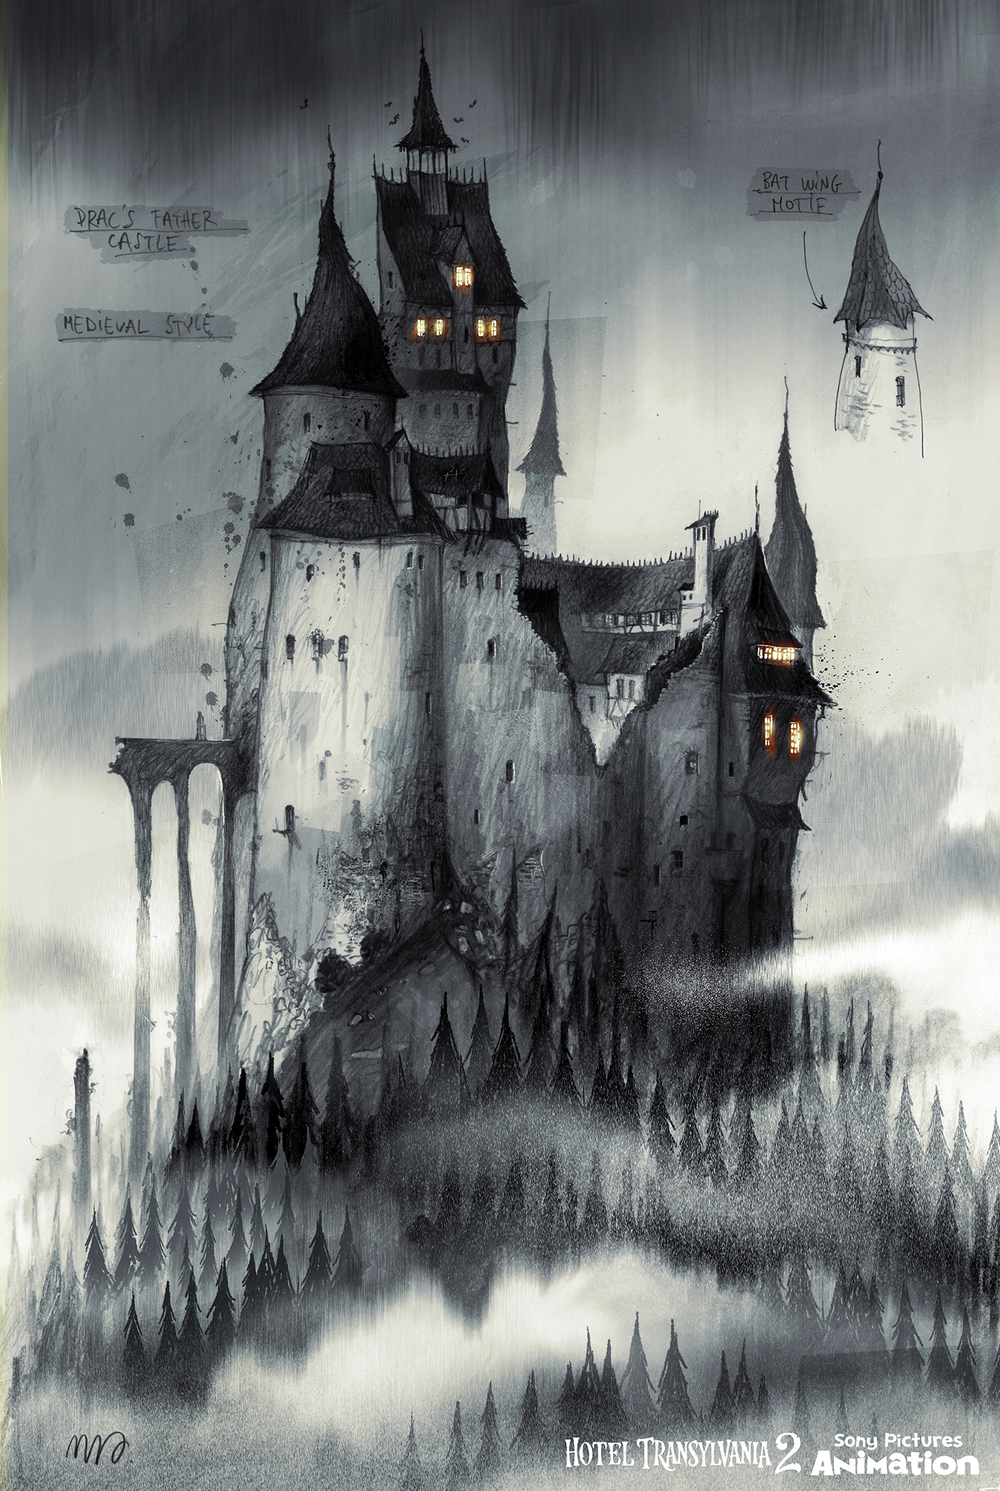 Before it was decided that Vlad would live in a cave, we explored his castle a an iconic gothic vampire castle.